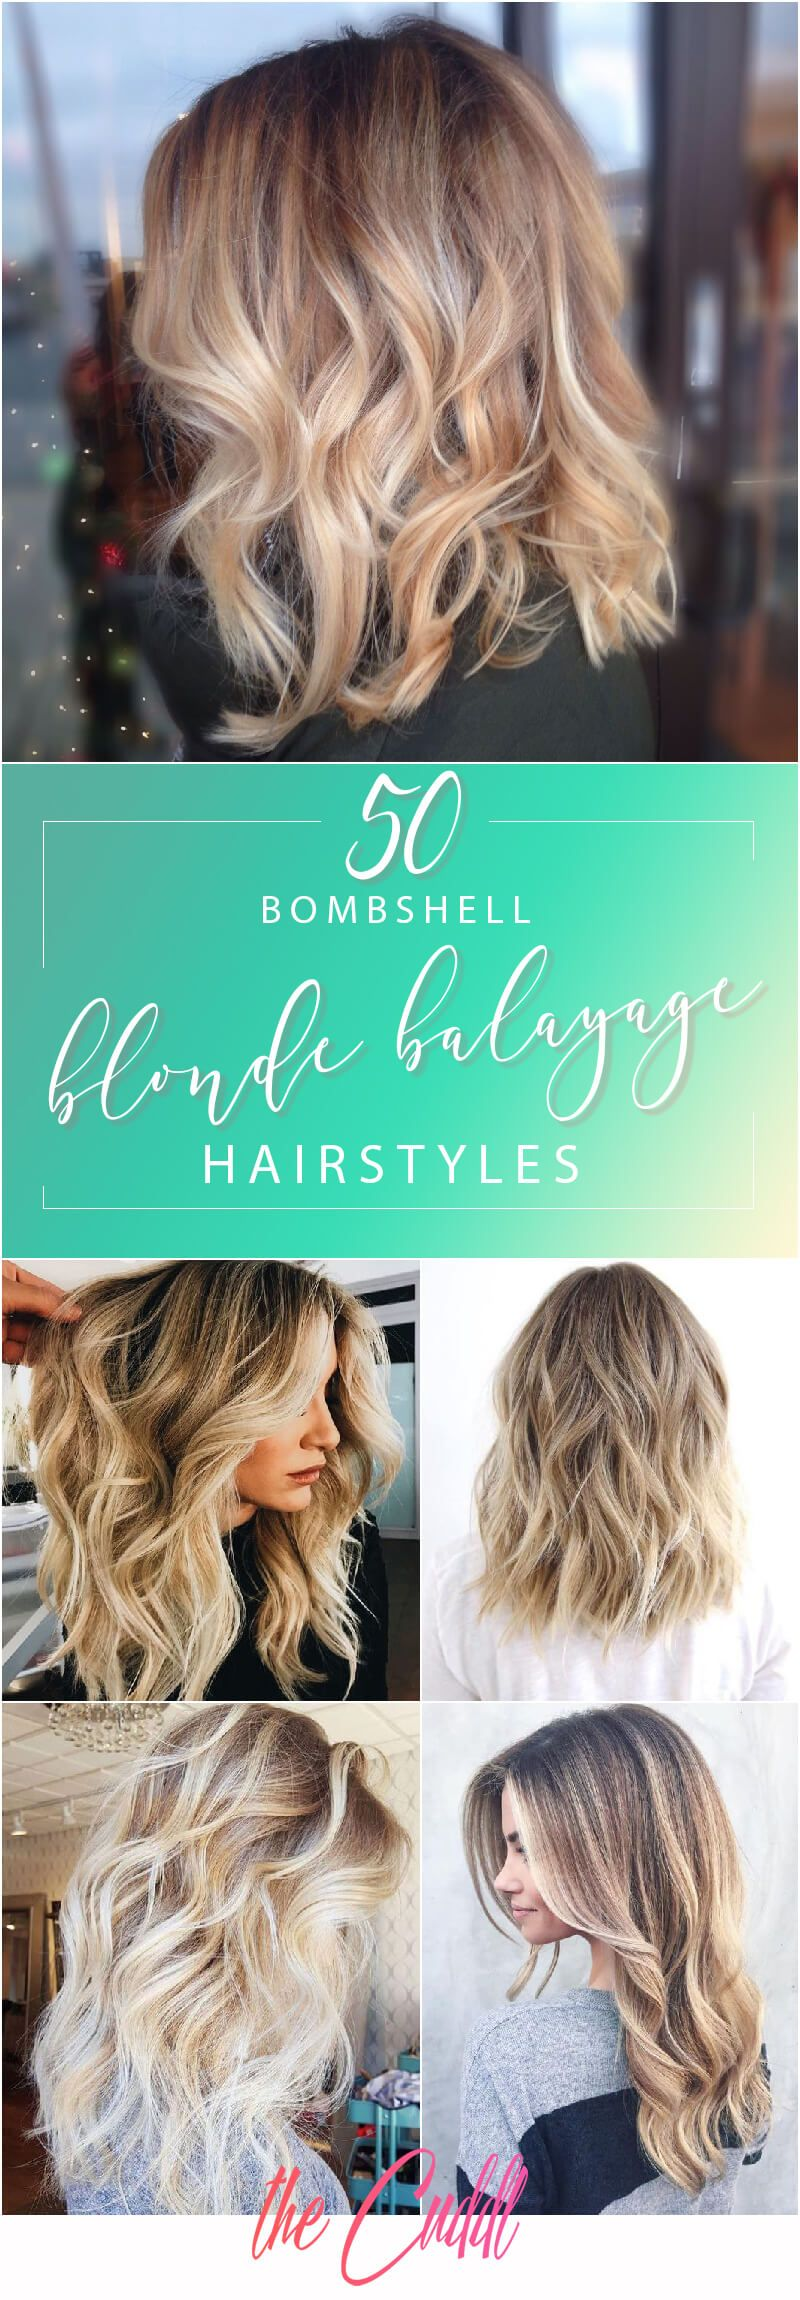 bombshell blonde balayage hairstyles that are cute and easy for